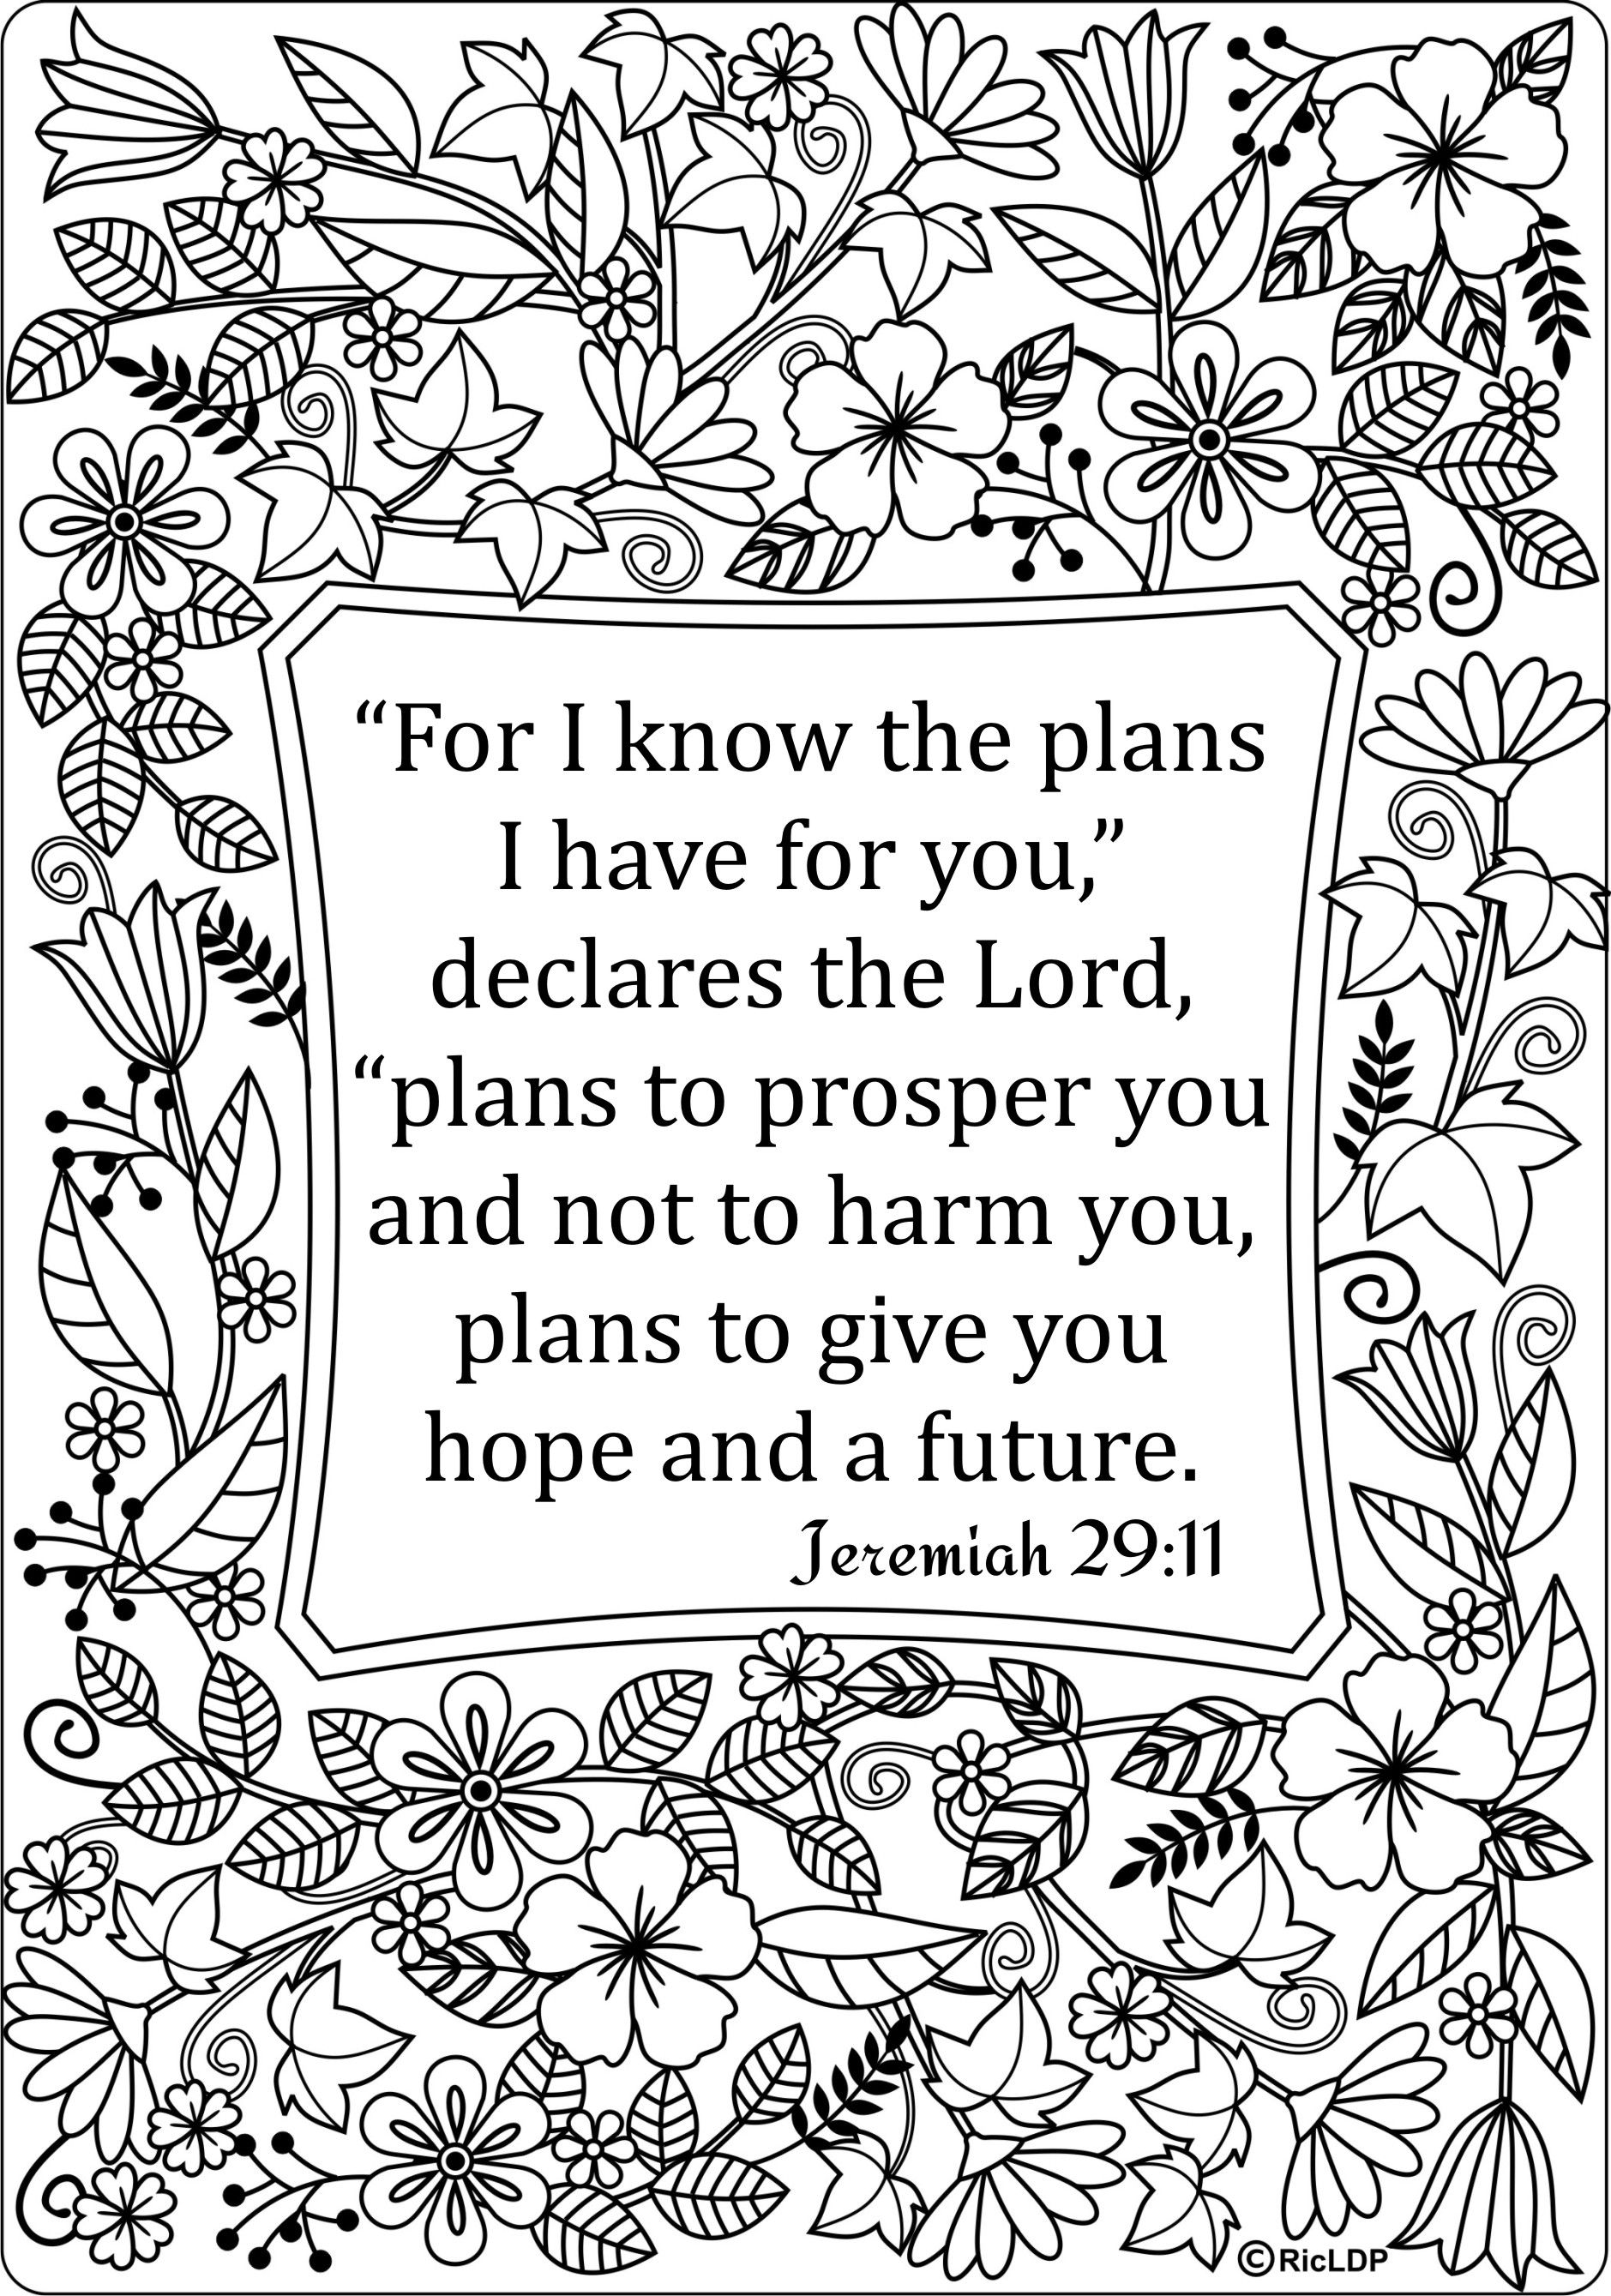 free bible verse coloring pages the joy of the lord sunday doodle bible verse coloring pages free verse coloring bible